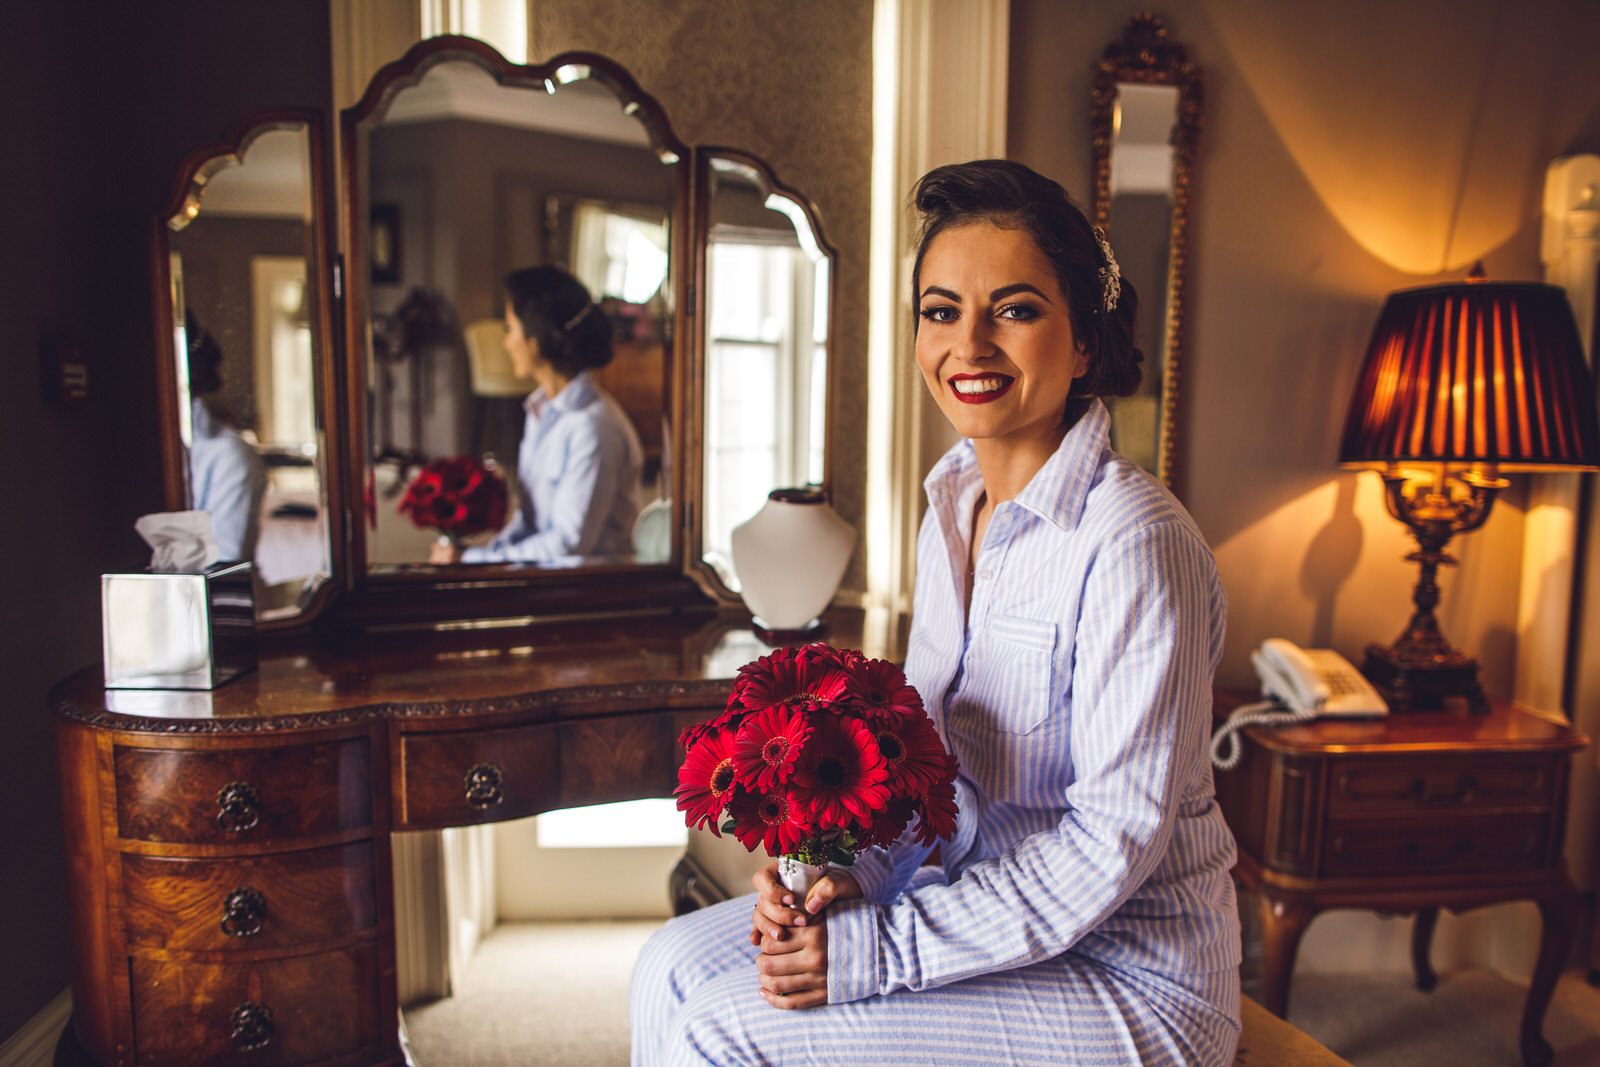 wicklow-wedding-photographer-roger-kenny-portrait-room-clonabreaney-house_018.jpg